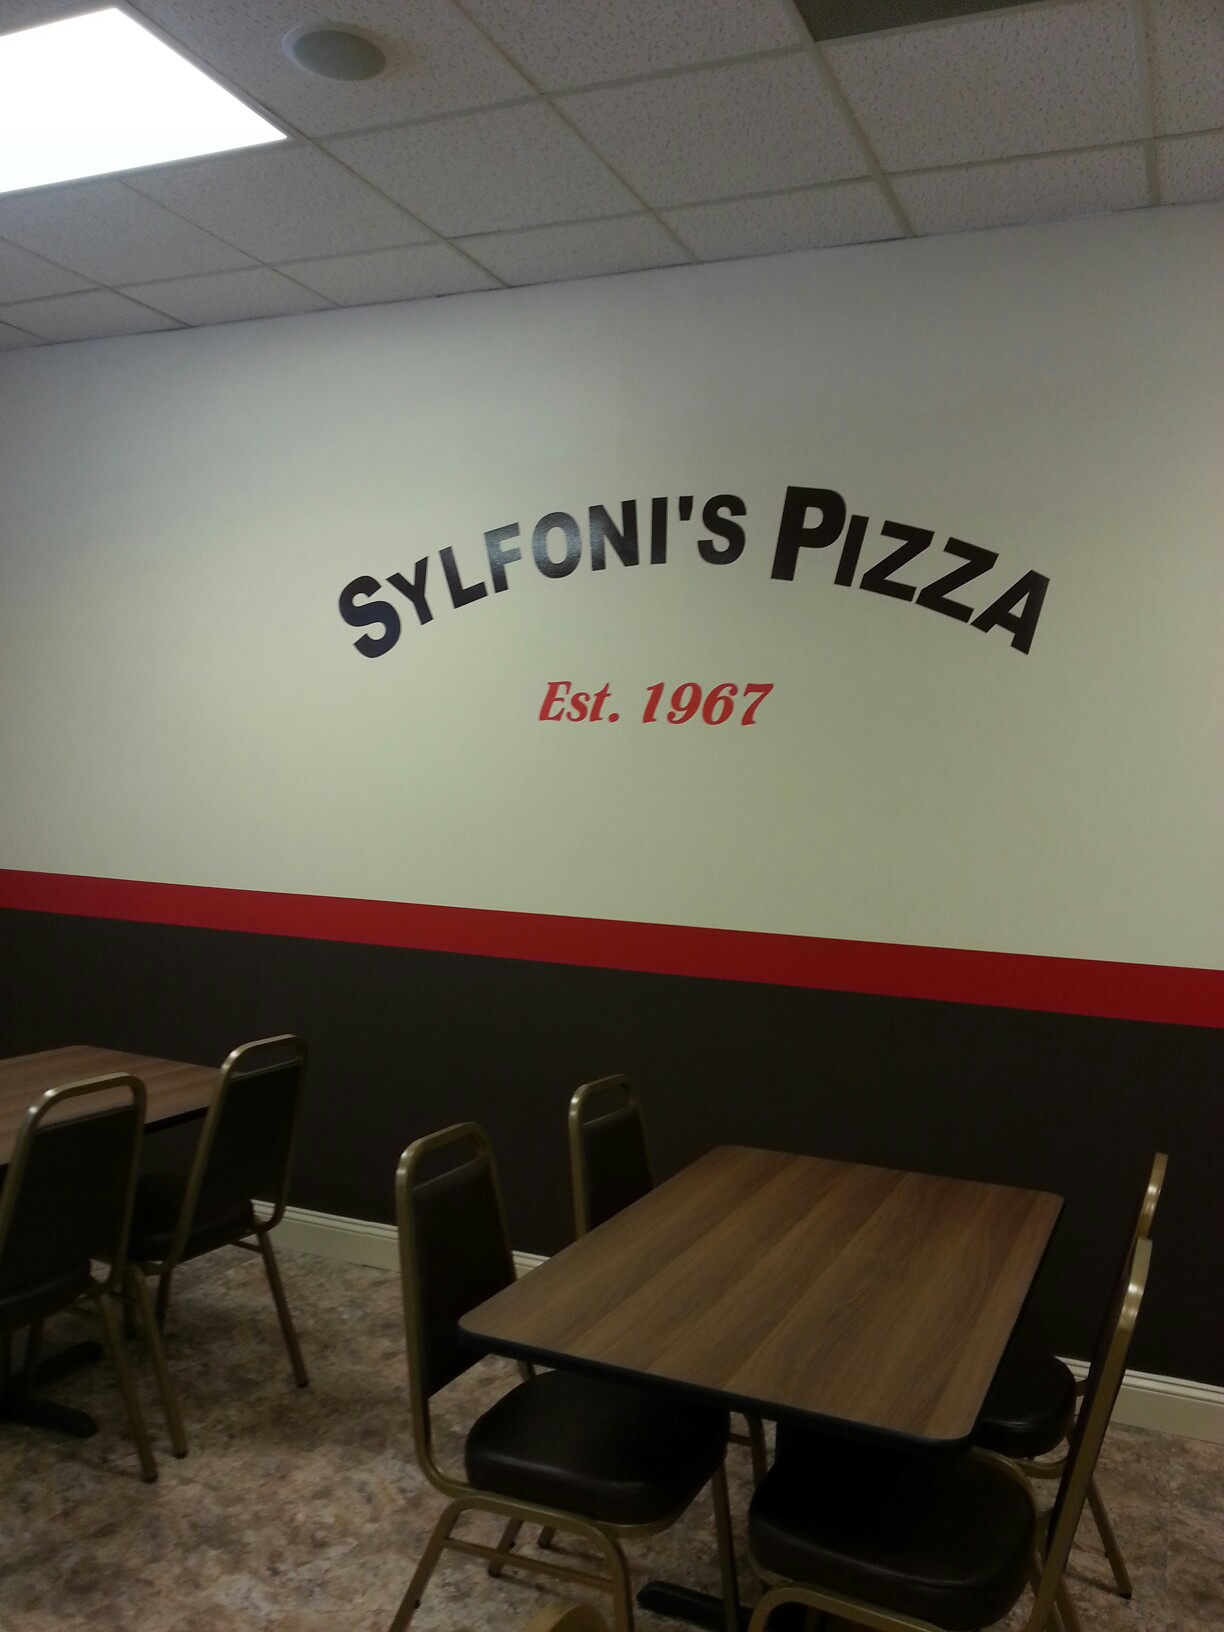 Sylfoni's Pizza, Russellville KY